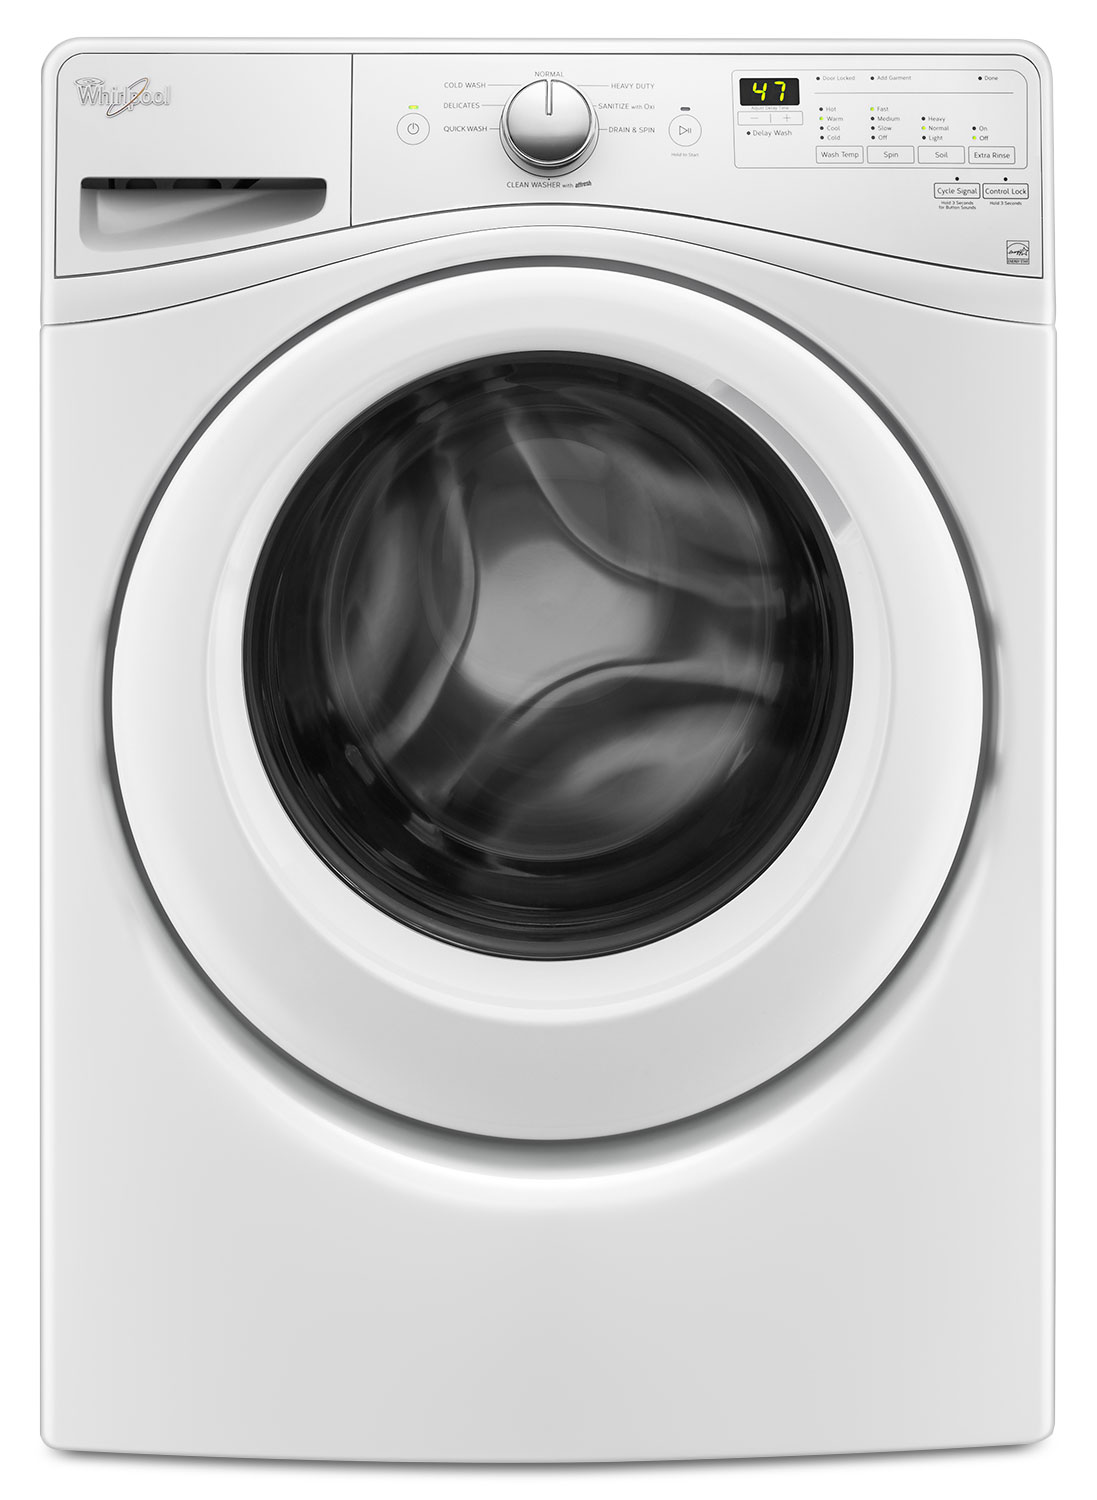 Whirlpool White Front-Load Washer (4.6 Cu. Ft.) - WFW7590FW